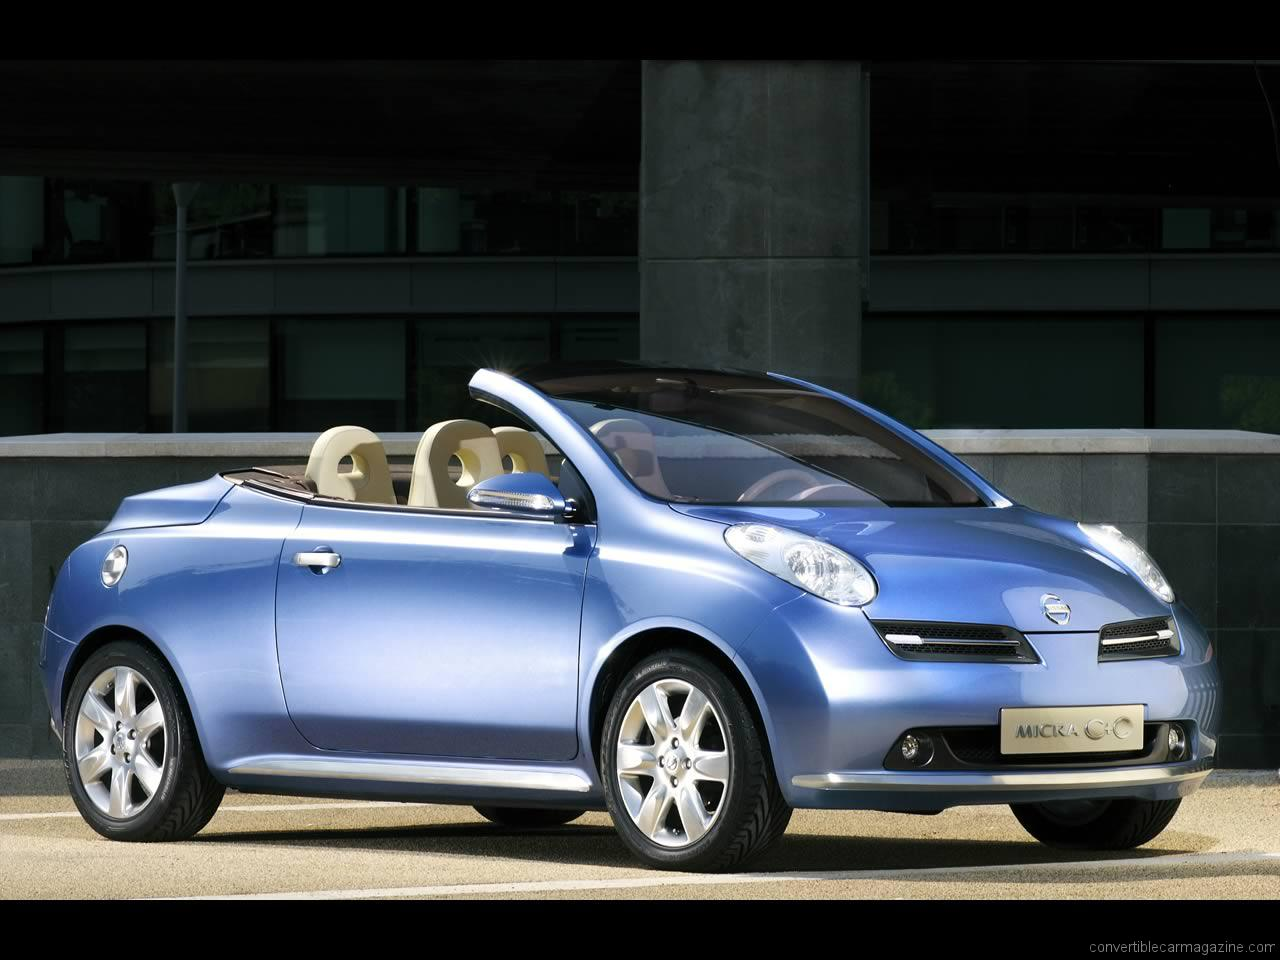 nissan micra coupe cabriolet (k12c) 2011 wallpaper #14